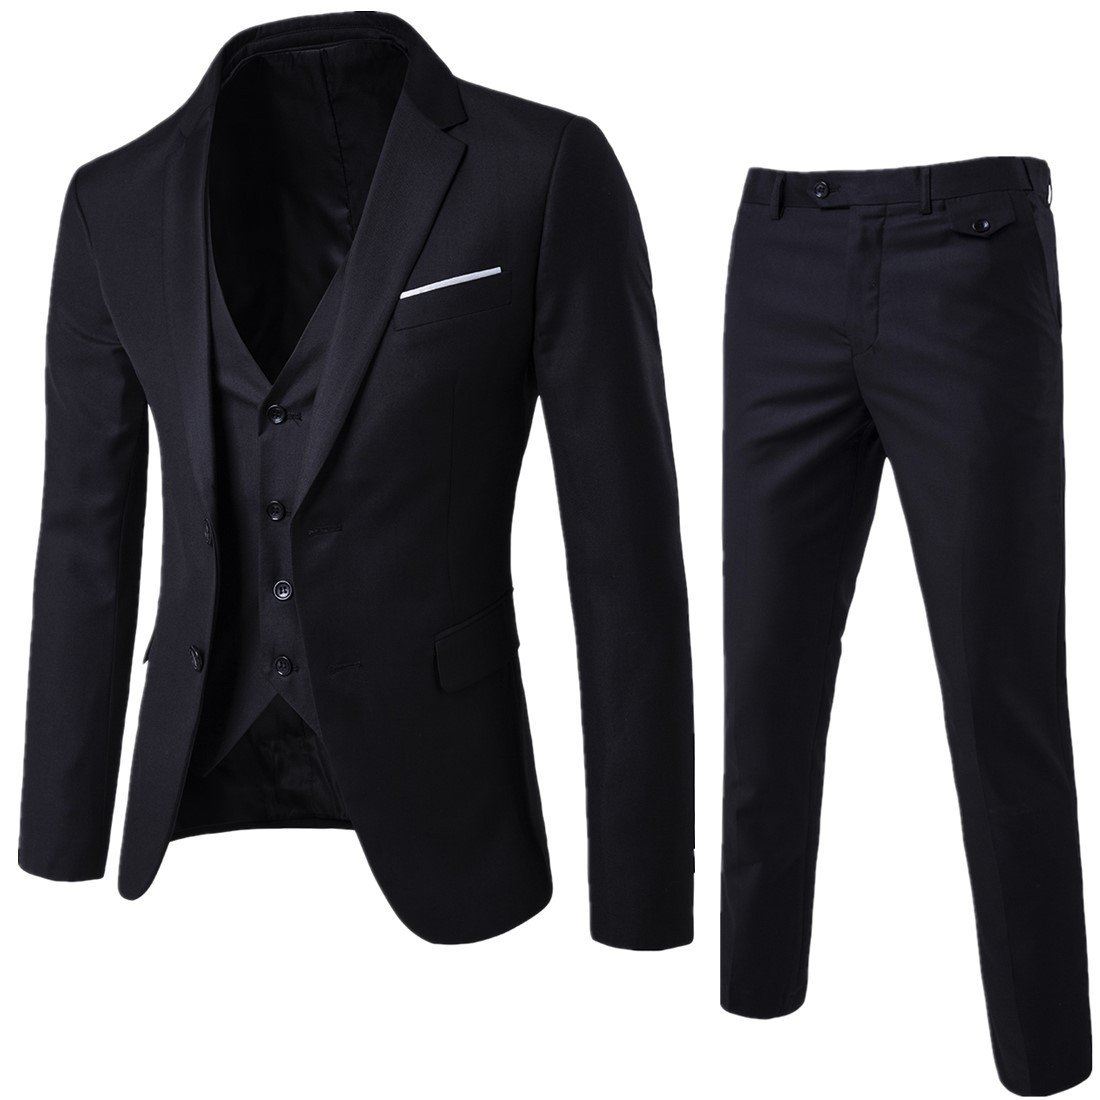 YIMANIE Mens Suit 3 Piece Single Breasted Jacket Two Button Slim Fit Blazer Tux Vest&Trousers, Black, Large